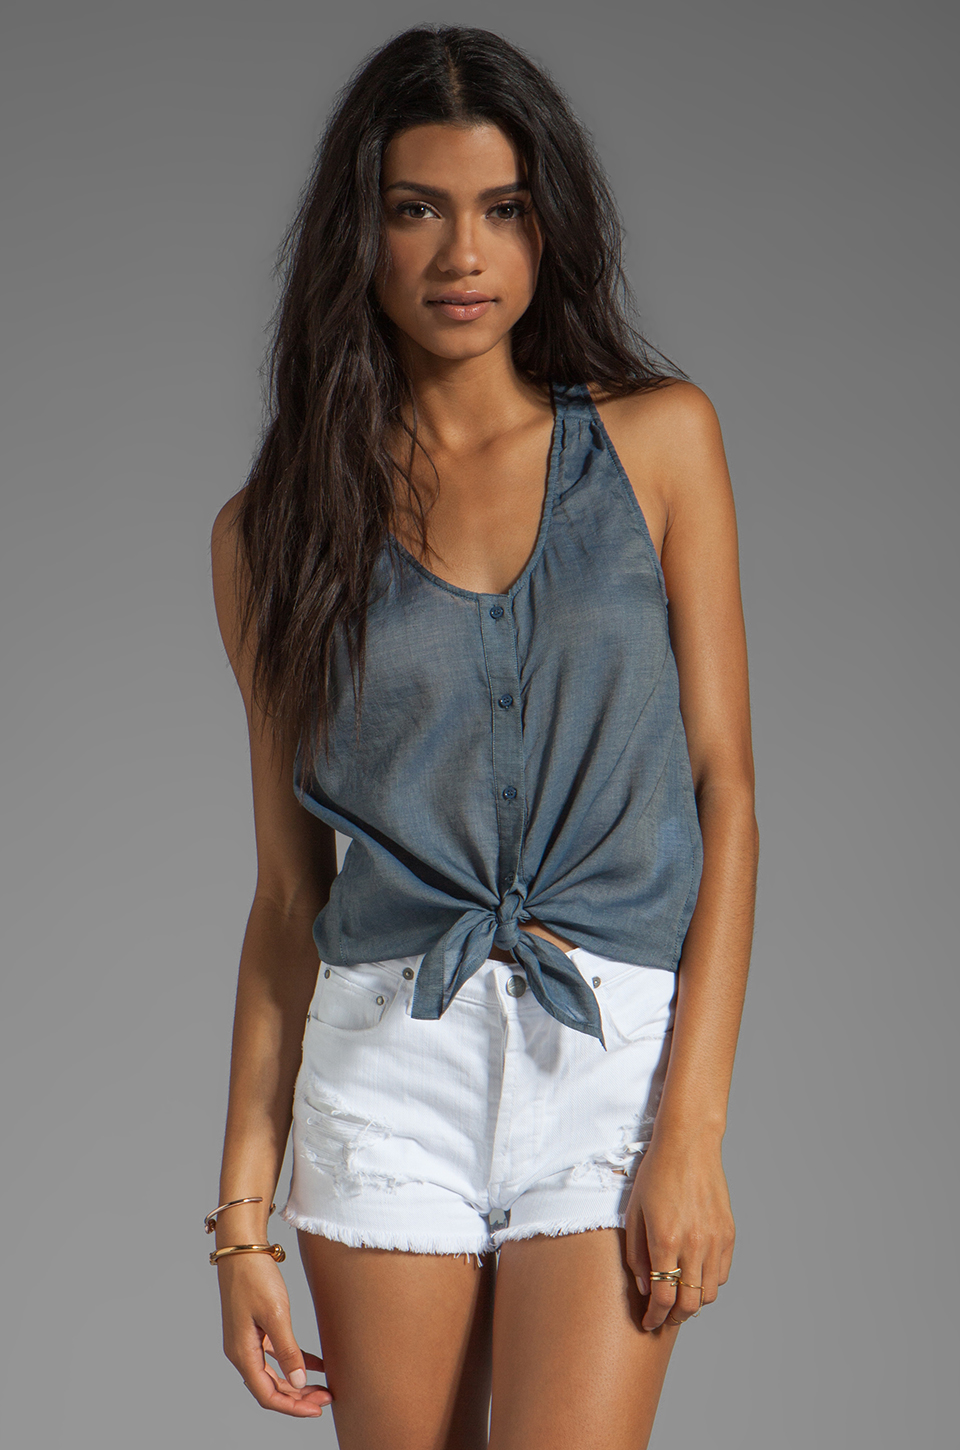 Joie Elisandra Denim Tank in Prairie Blue